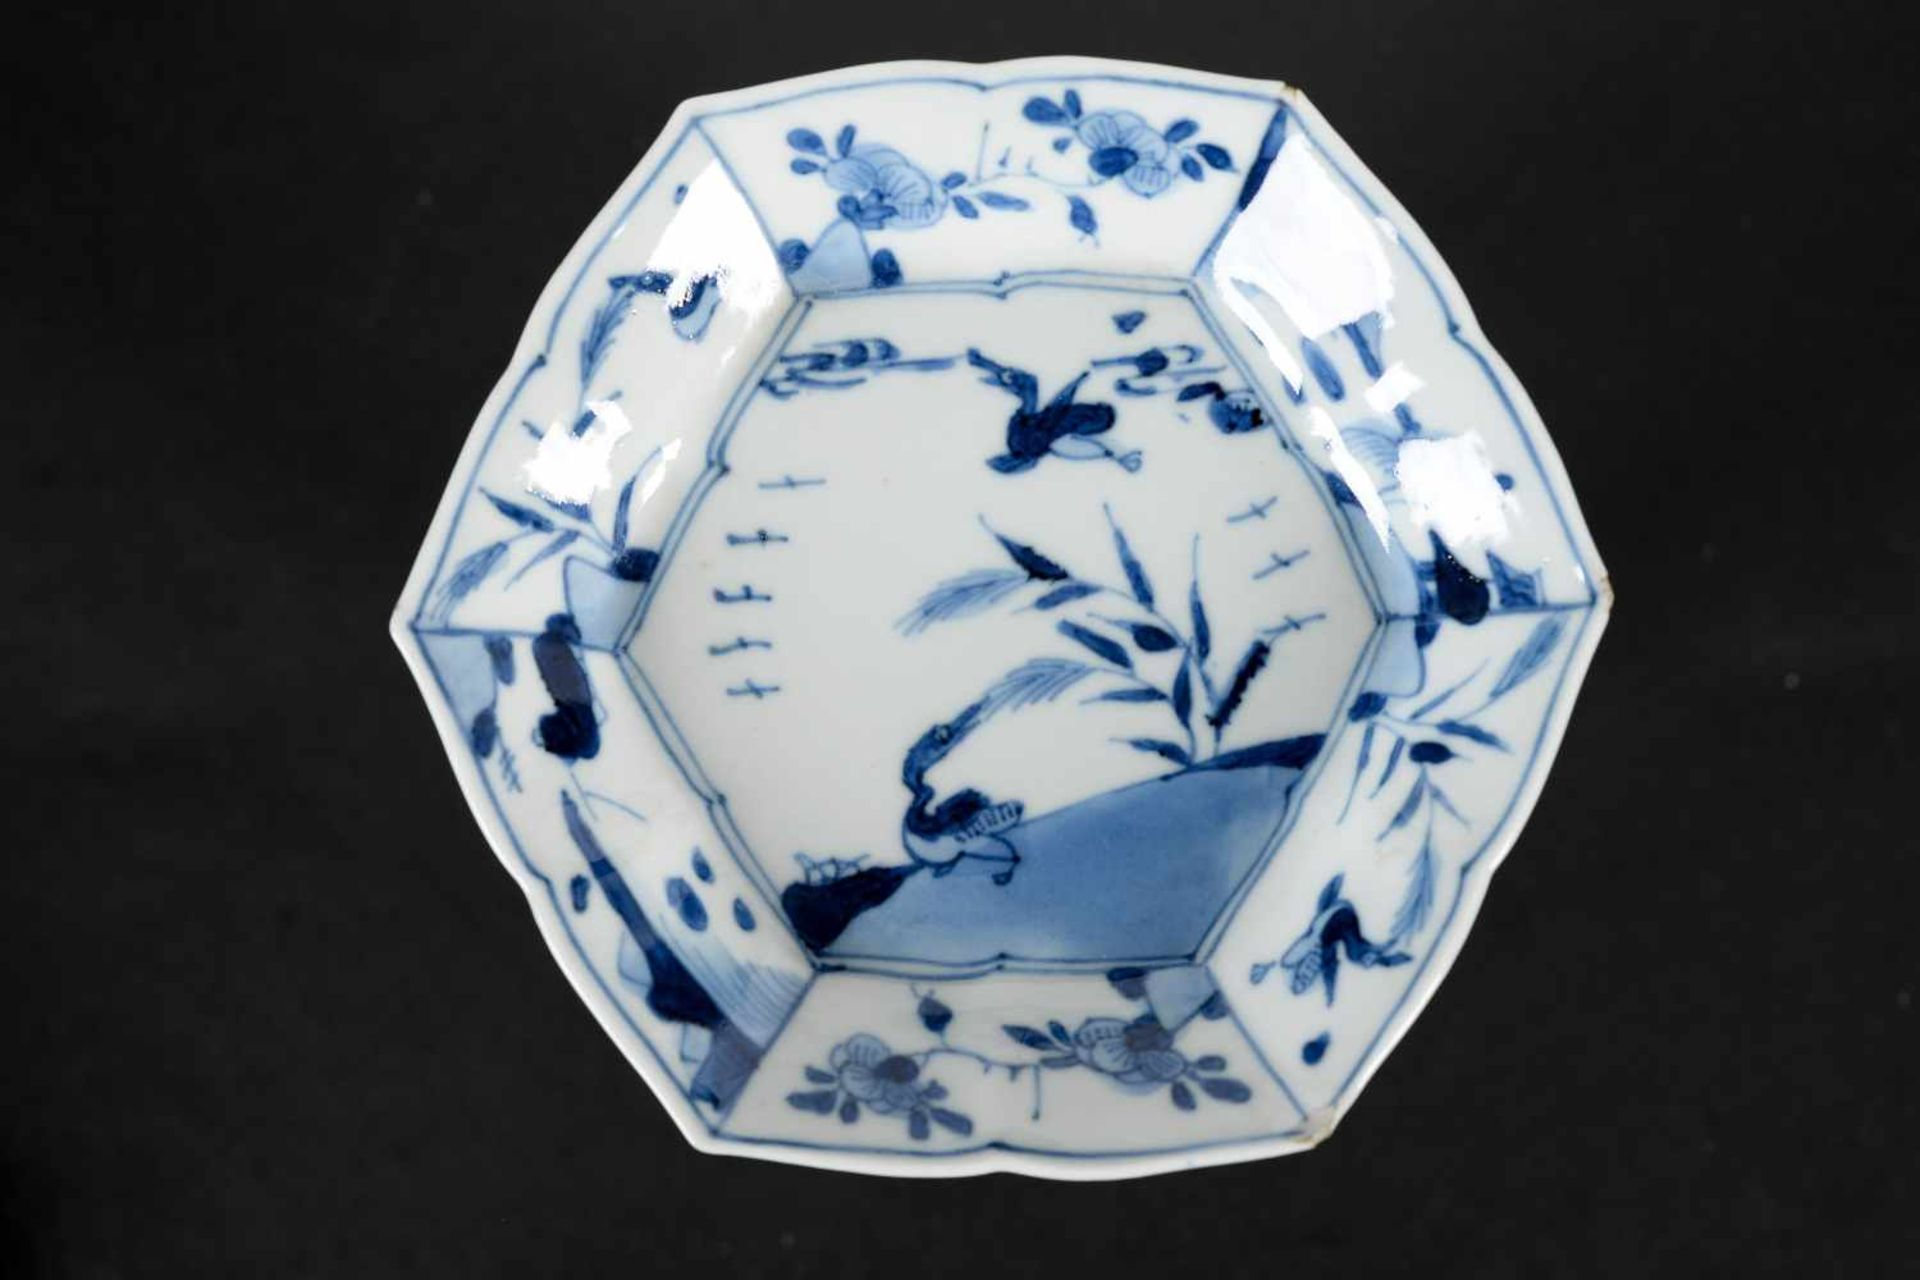 A set of three hexagonal blue and white porcelain cups with saucers, decorated with ducks, flowers - Bild 2 aus 12